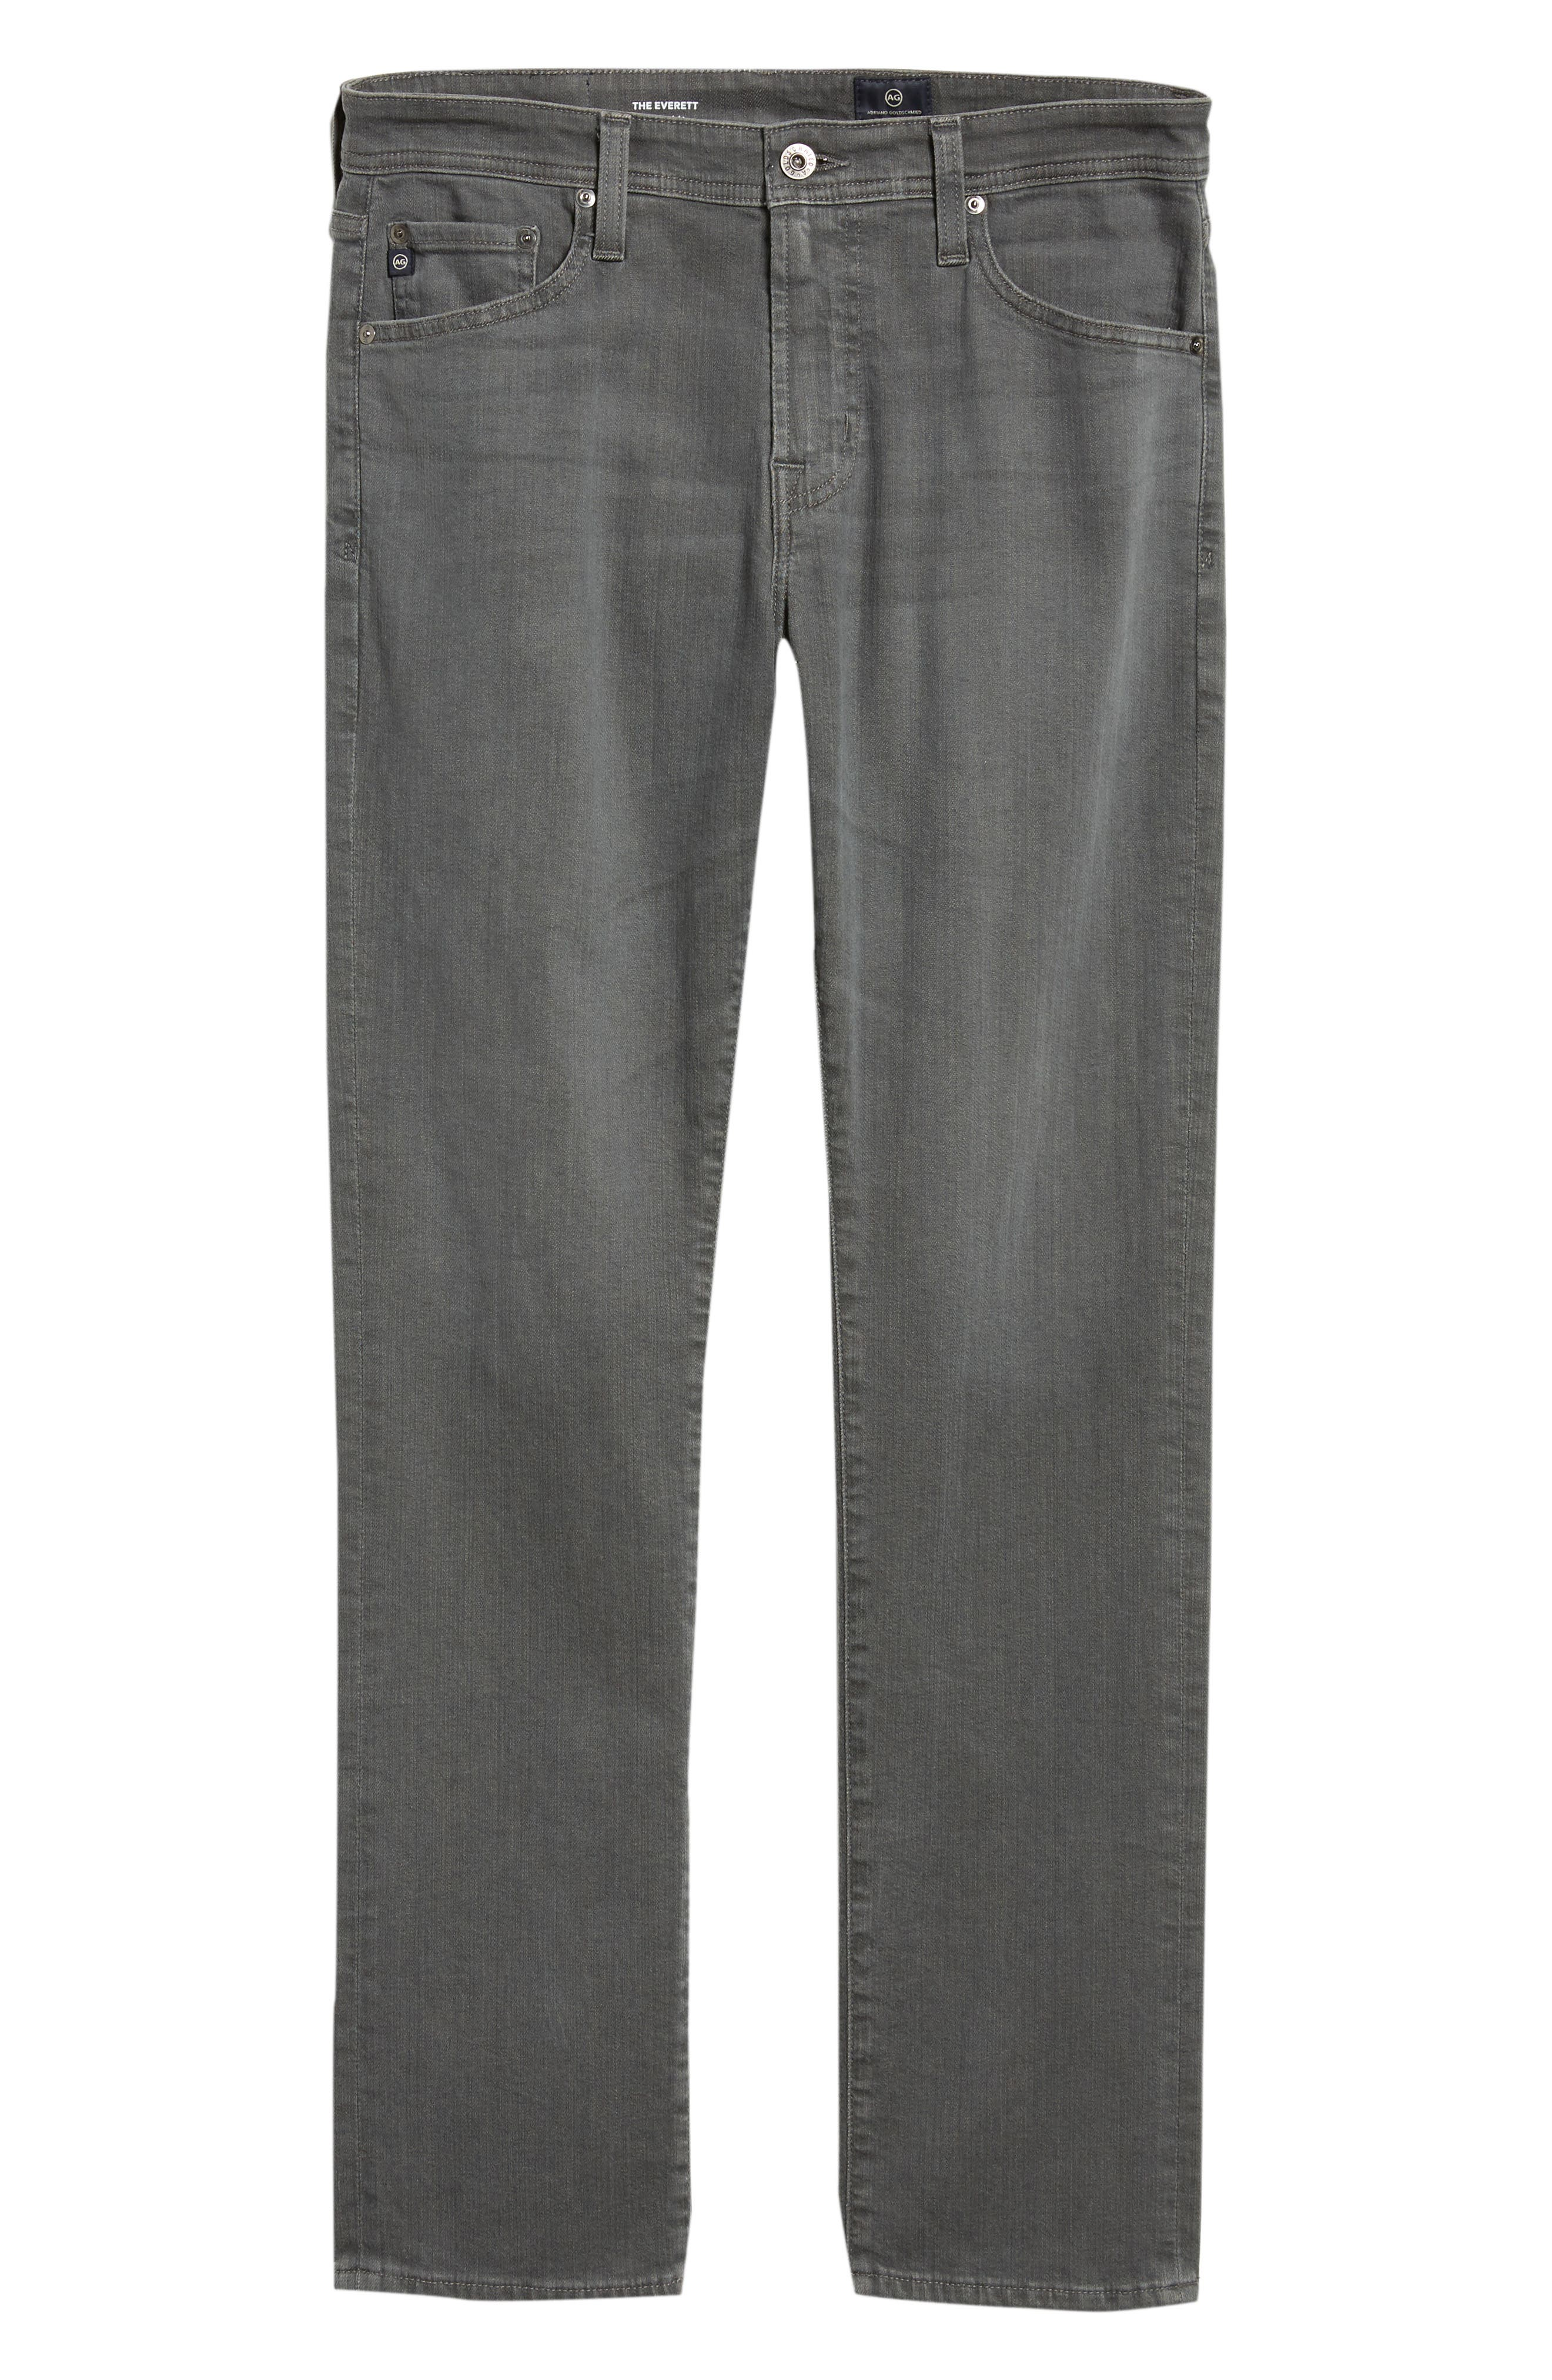 Everett Slim Straight Leg Jeans,                             Alternate thumbnail 6, color,                             PASSENGER